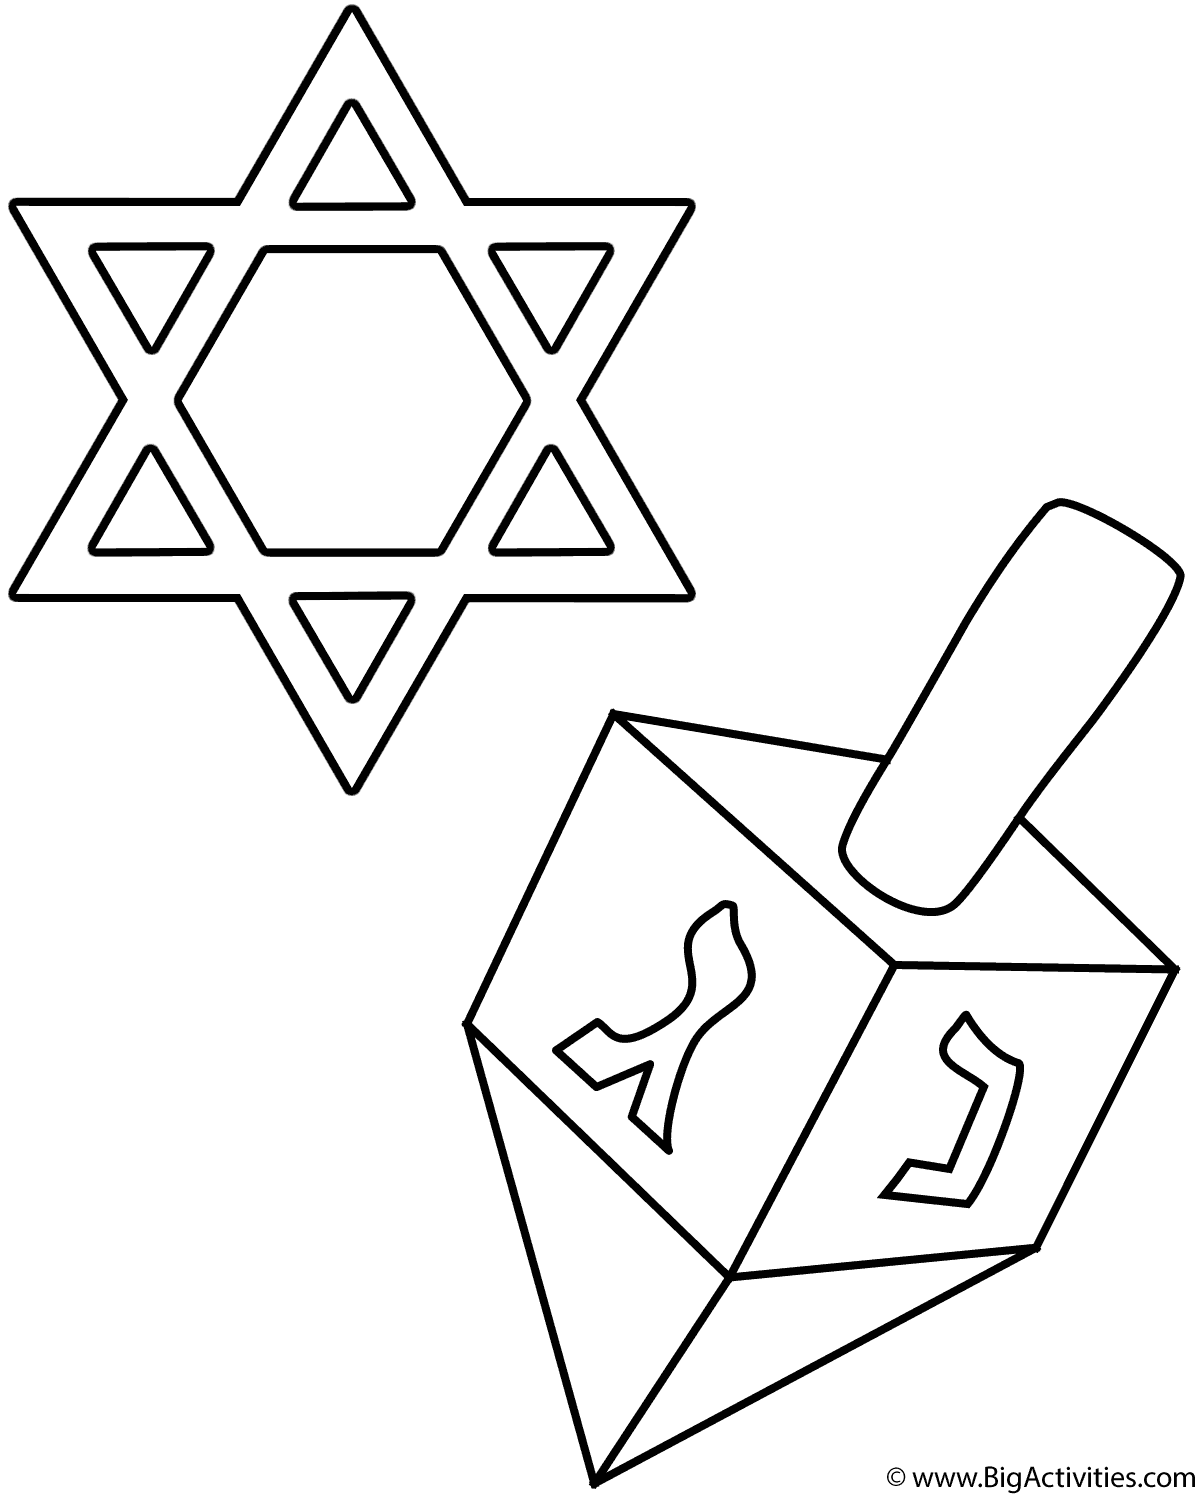 dreidel and star of david coloring page hanukkah. Black Bedroom Furniture Sets. Home Design Ideas